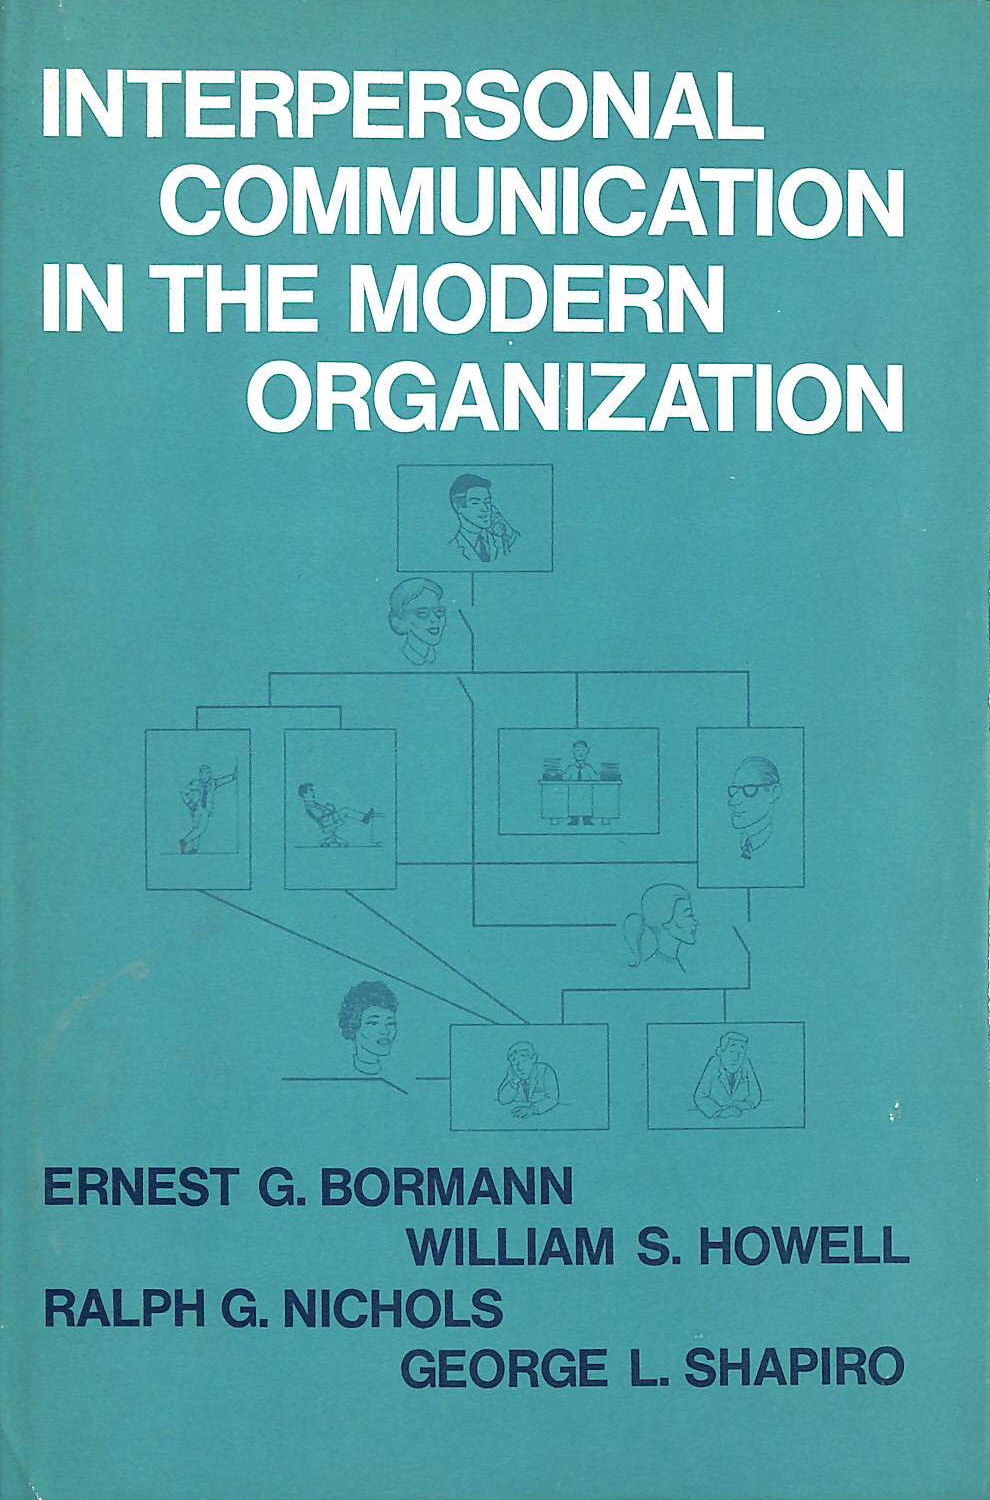 Image for Interpersonal Communication in the Modern Organization